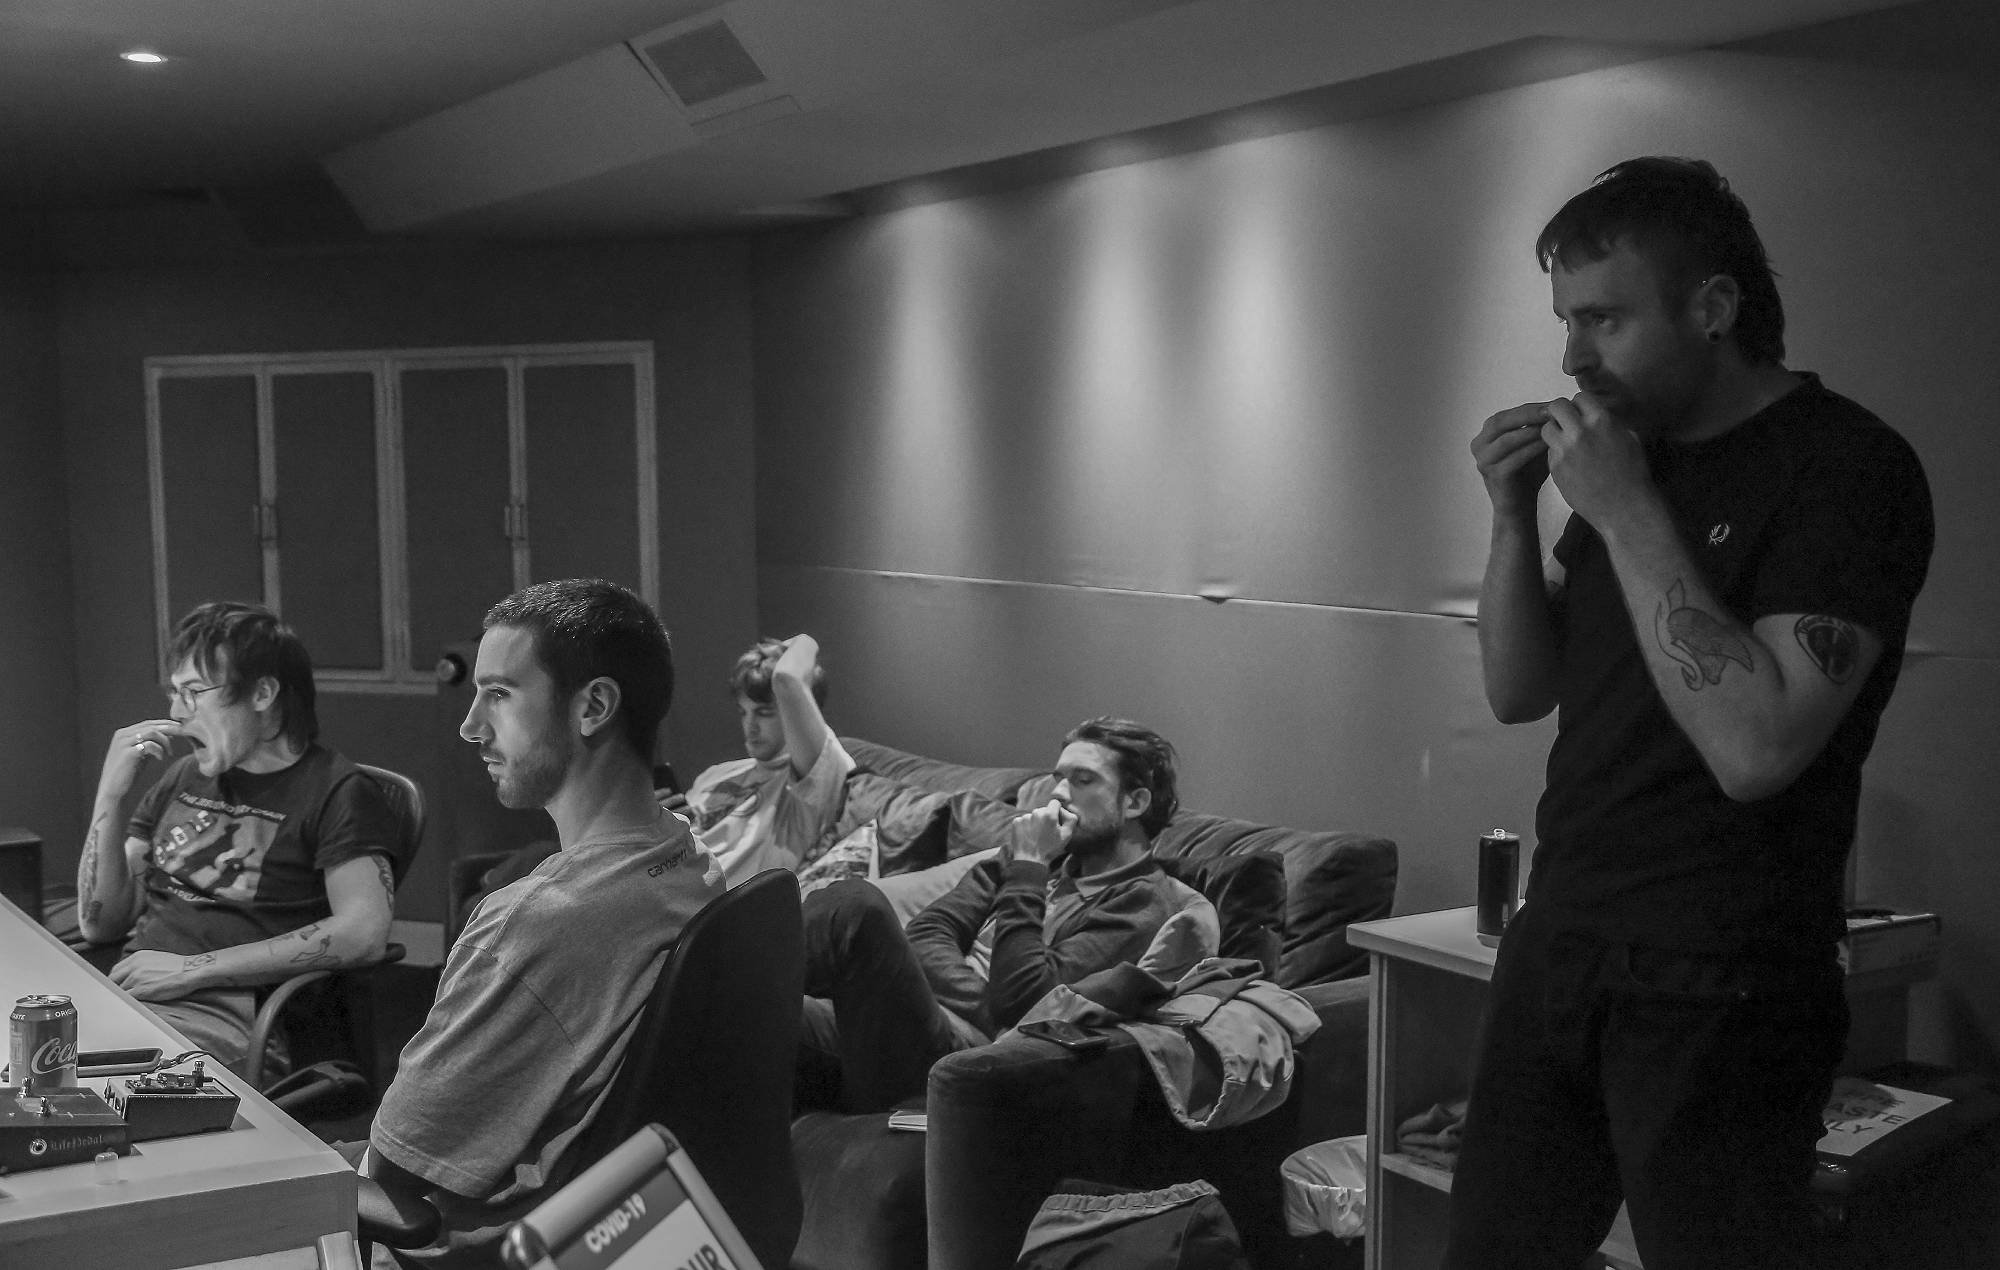 Fontaines D.C. recording their Velvet Underground cover for the new tribute album. Credit: Press